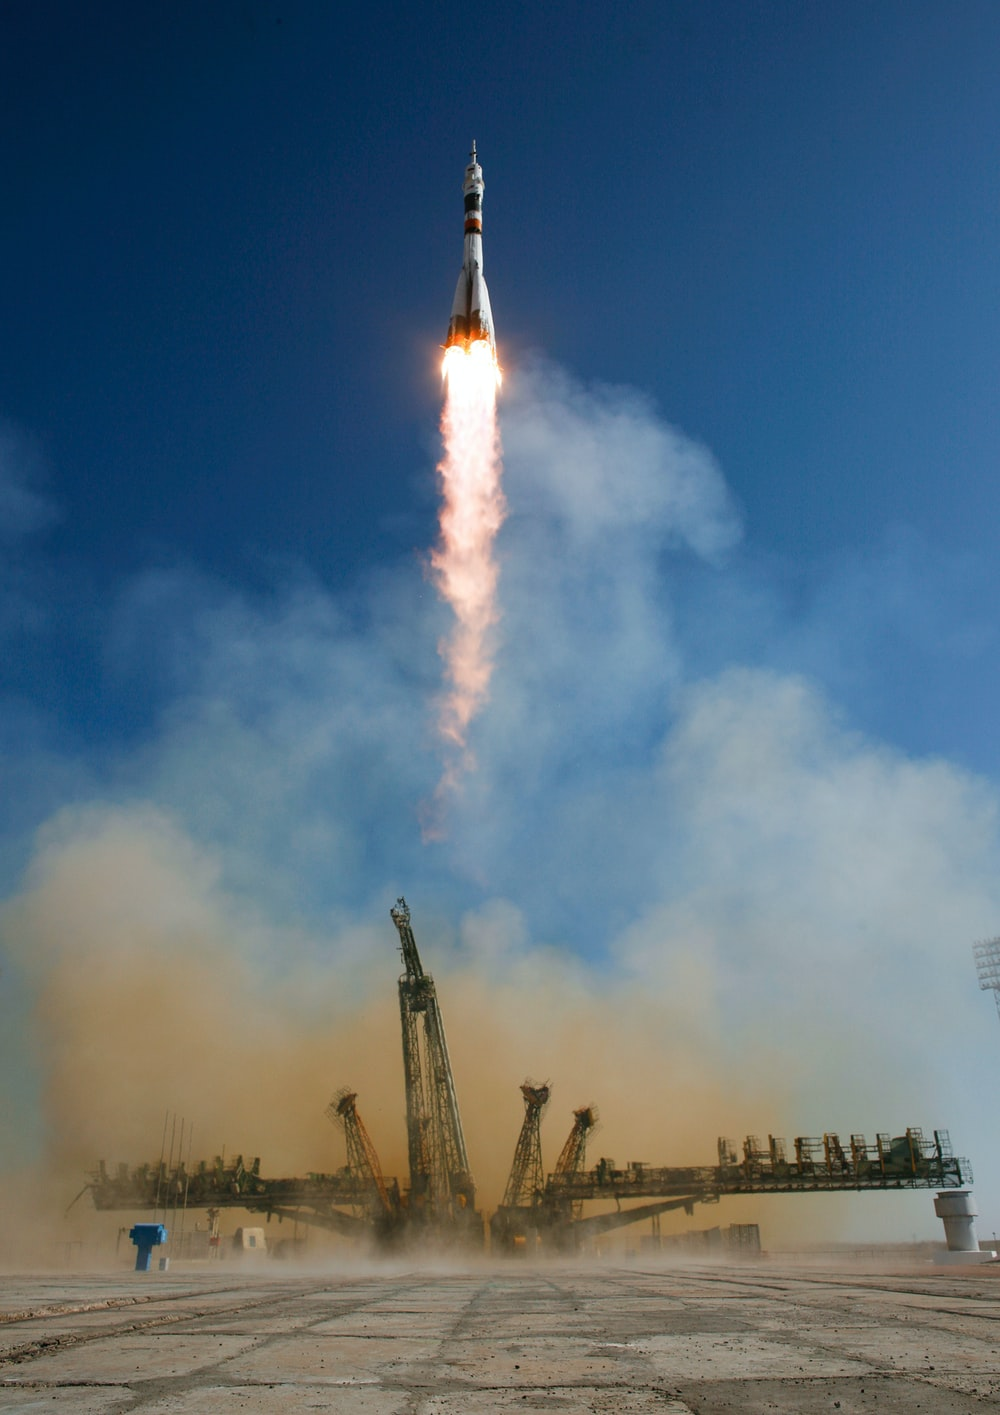 Soyuz rocket launches from Baikonur launch pad